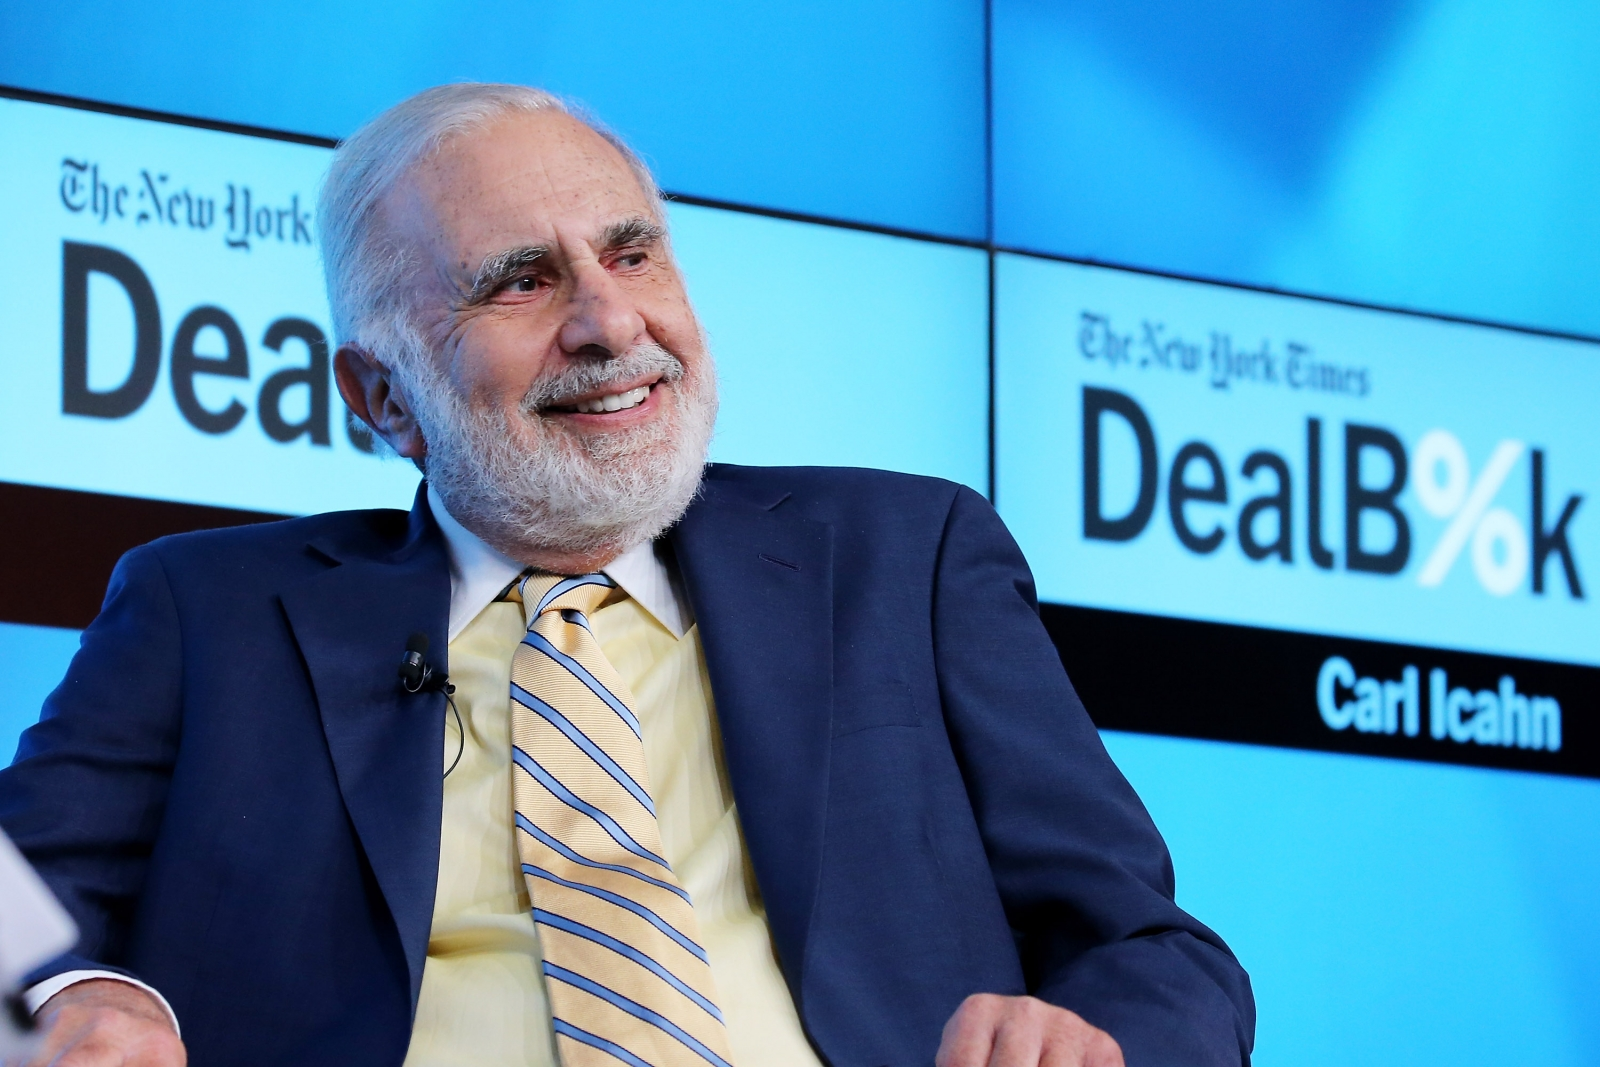 Carl Icahn at a New York conference